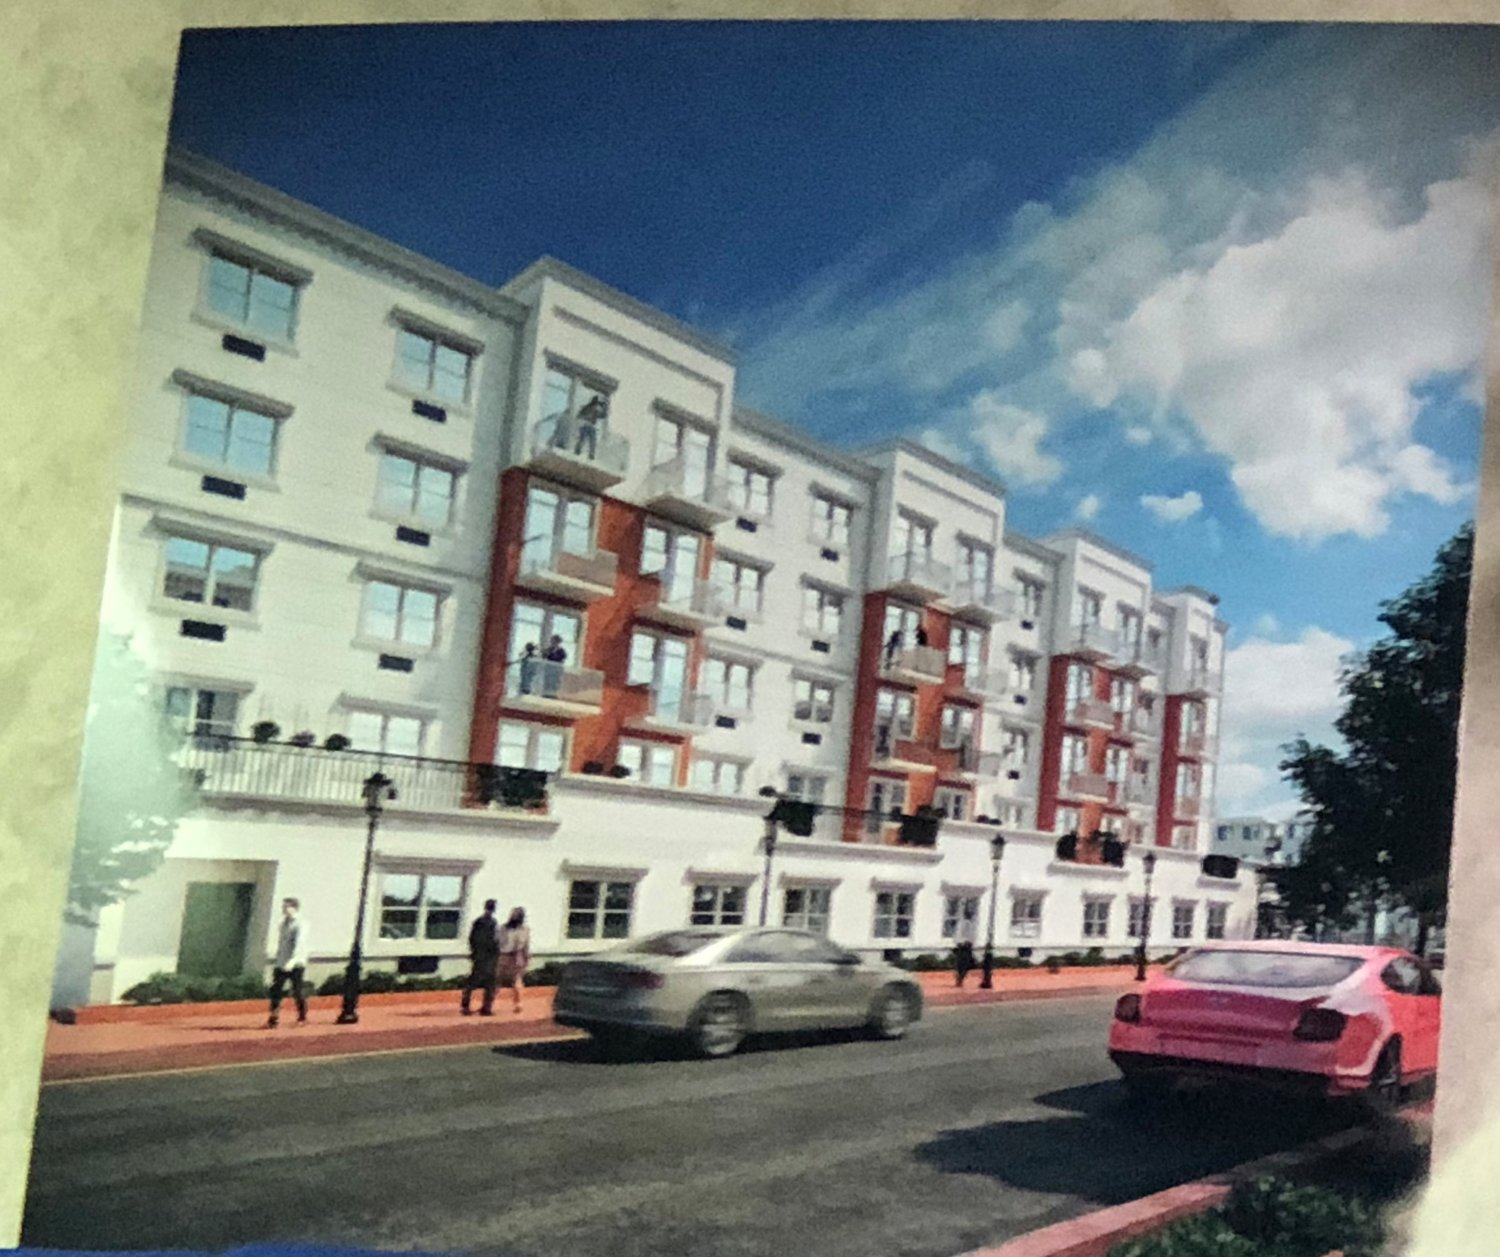 A Town of Hempstead Board of Appeals hearing for a proposed five-story building at the intersection of Bayview Avenue and Russell Place in Inwood was adjourned to April 29.